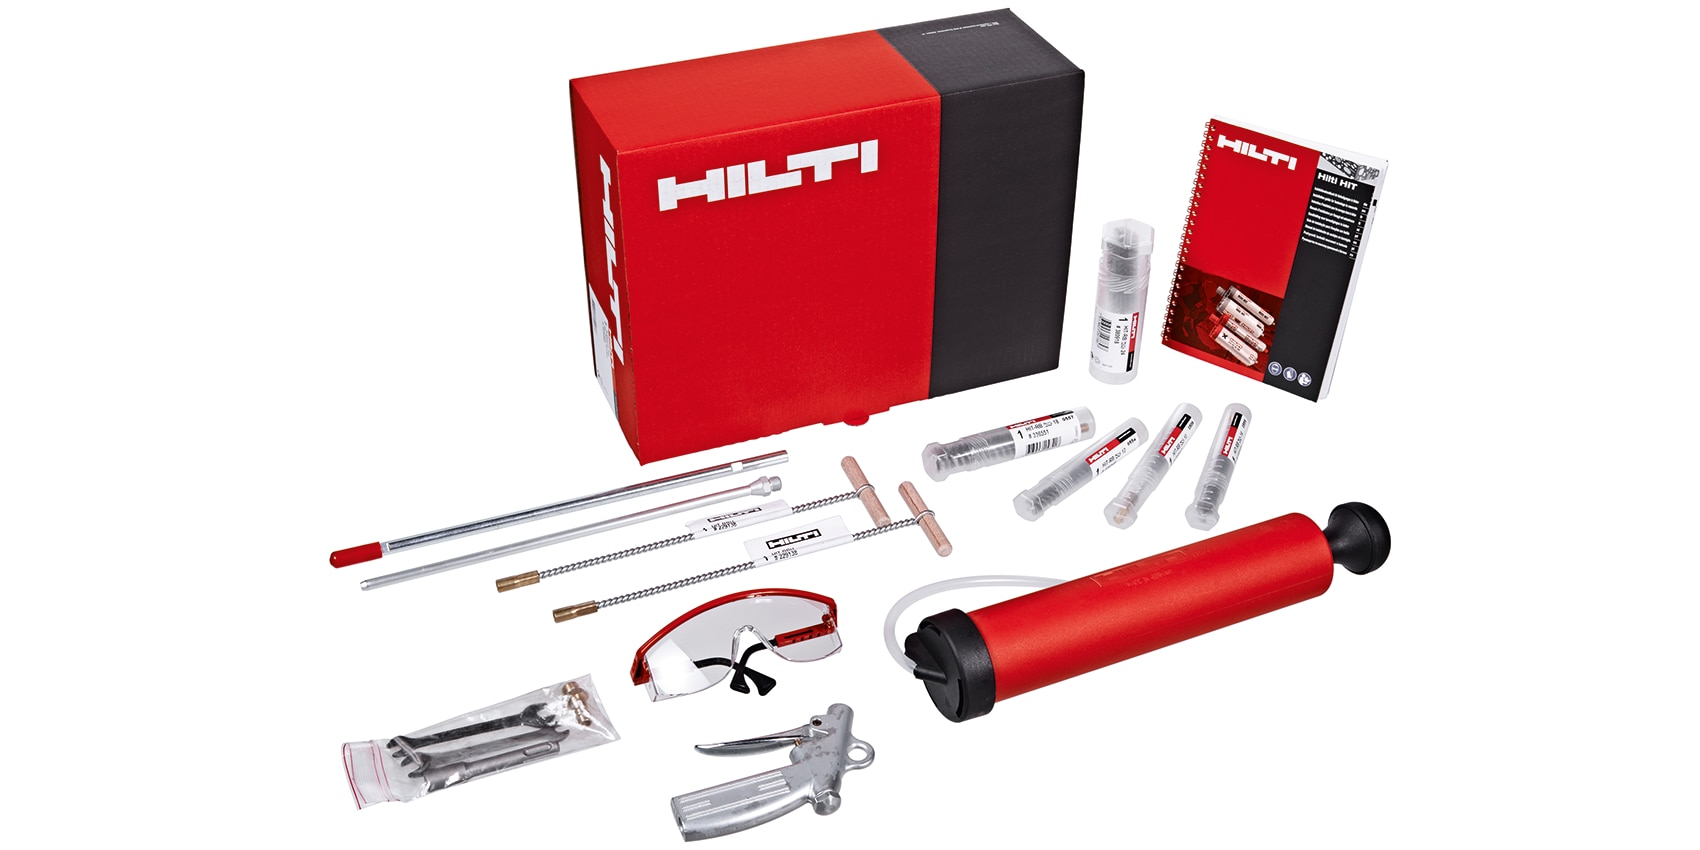 Hilti HIT Profi anchor accessory set